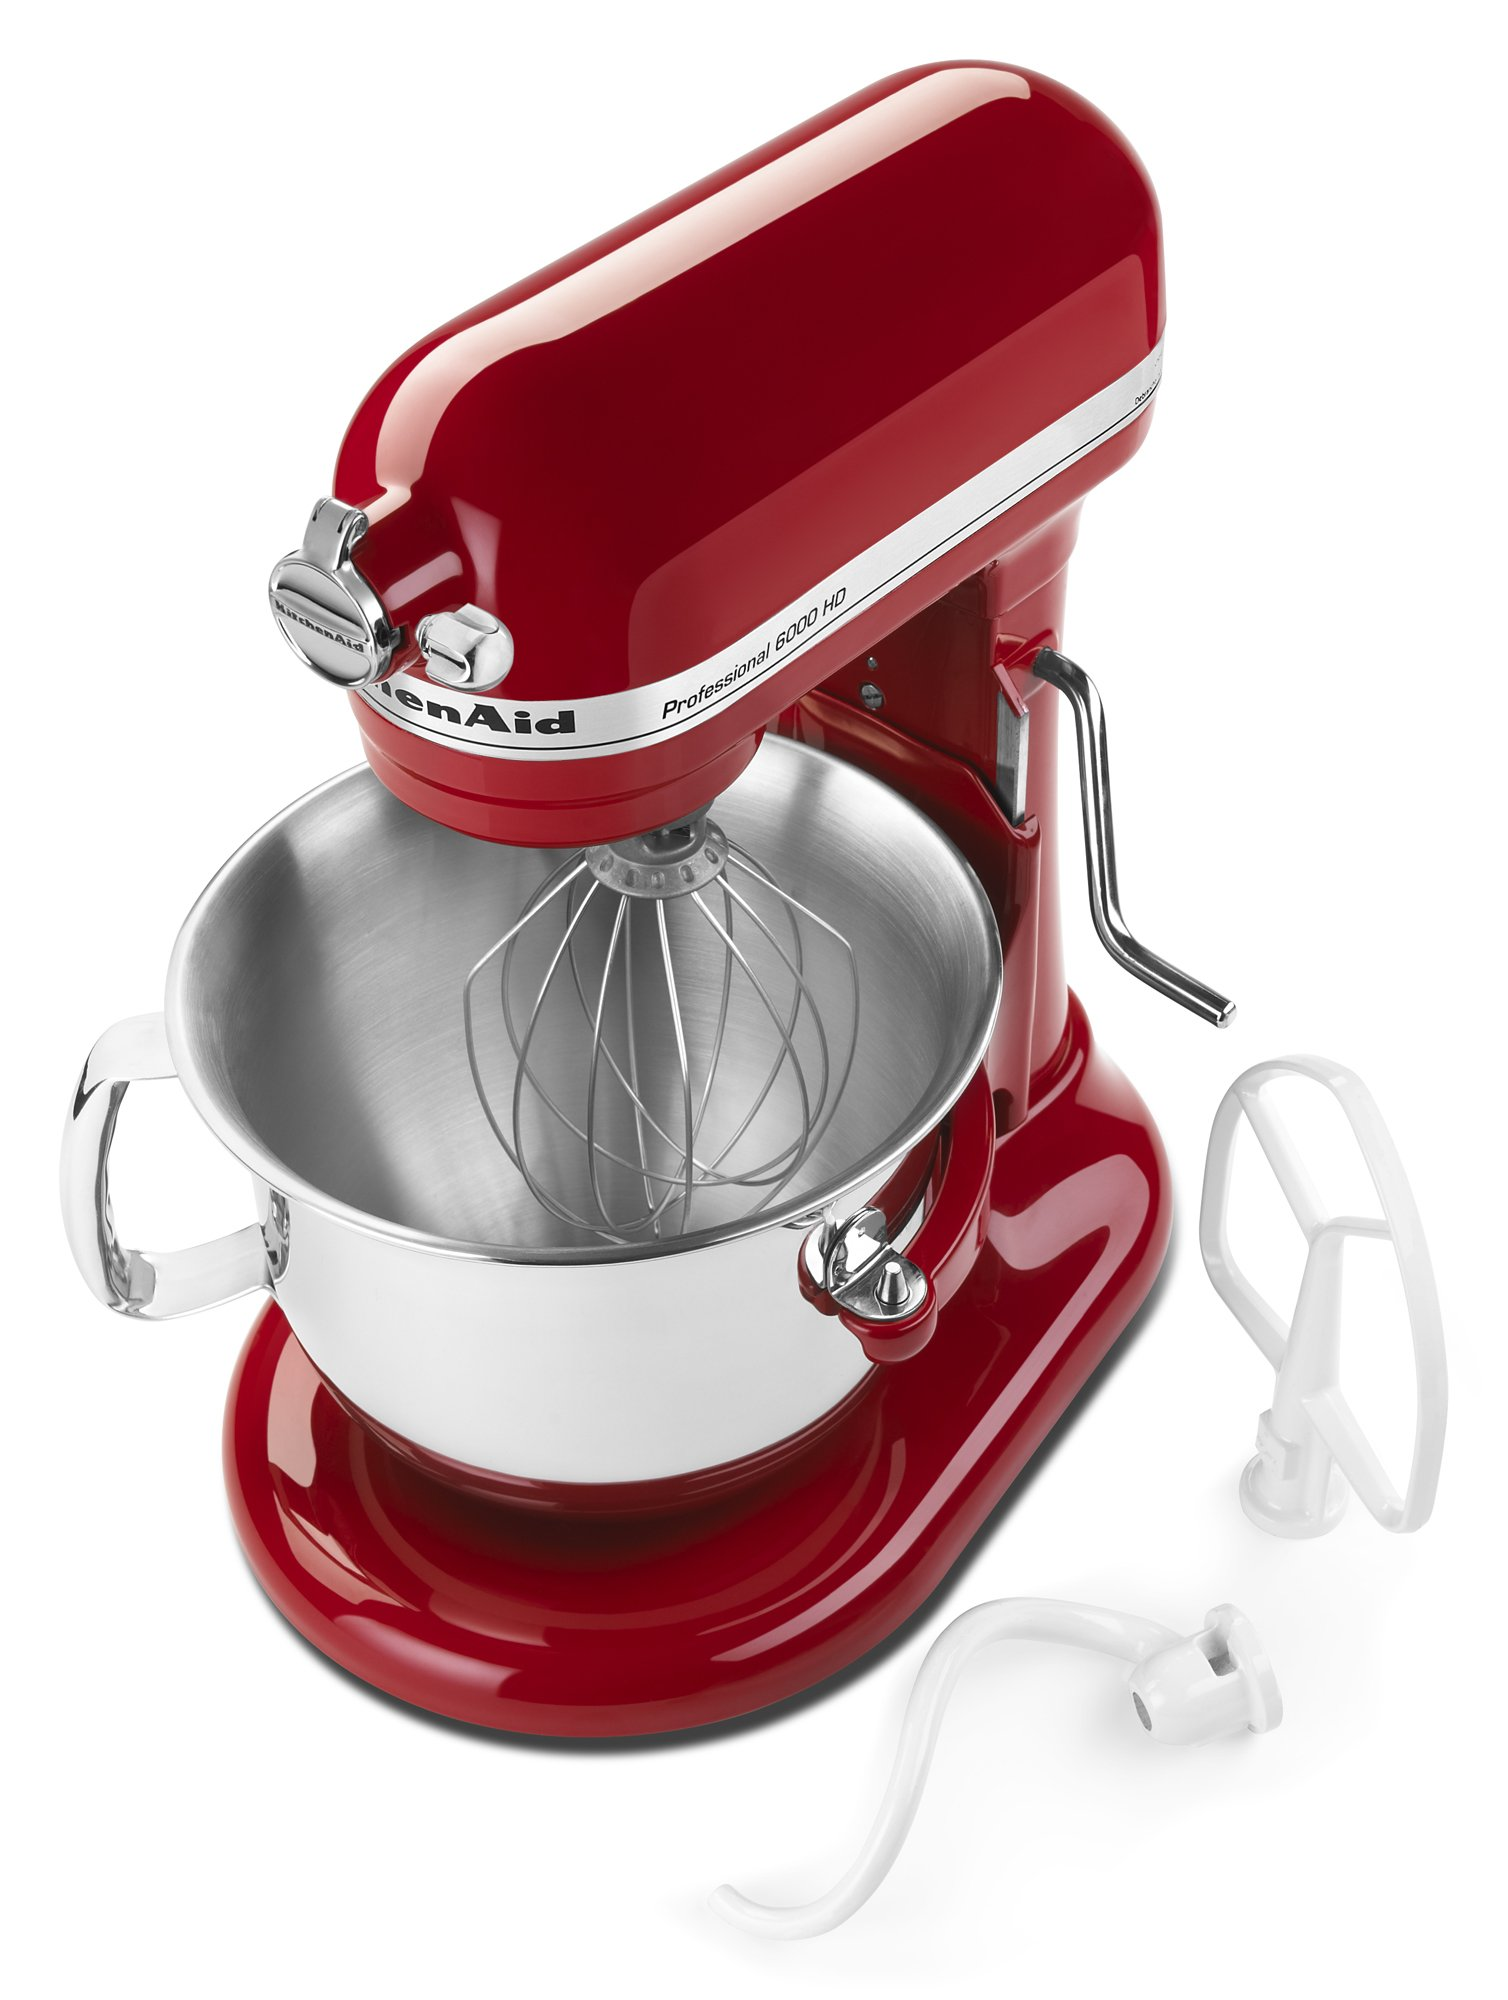 Kitchenaid Ksm6573cer 6 Qt Professional 6000 Hd Bowl Lift